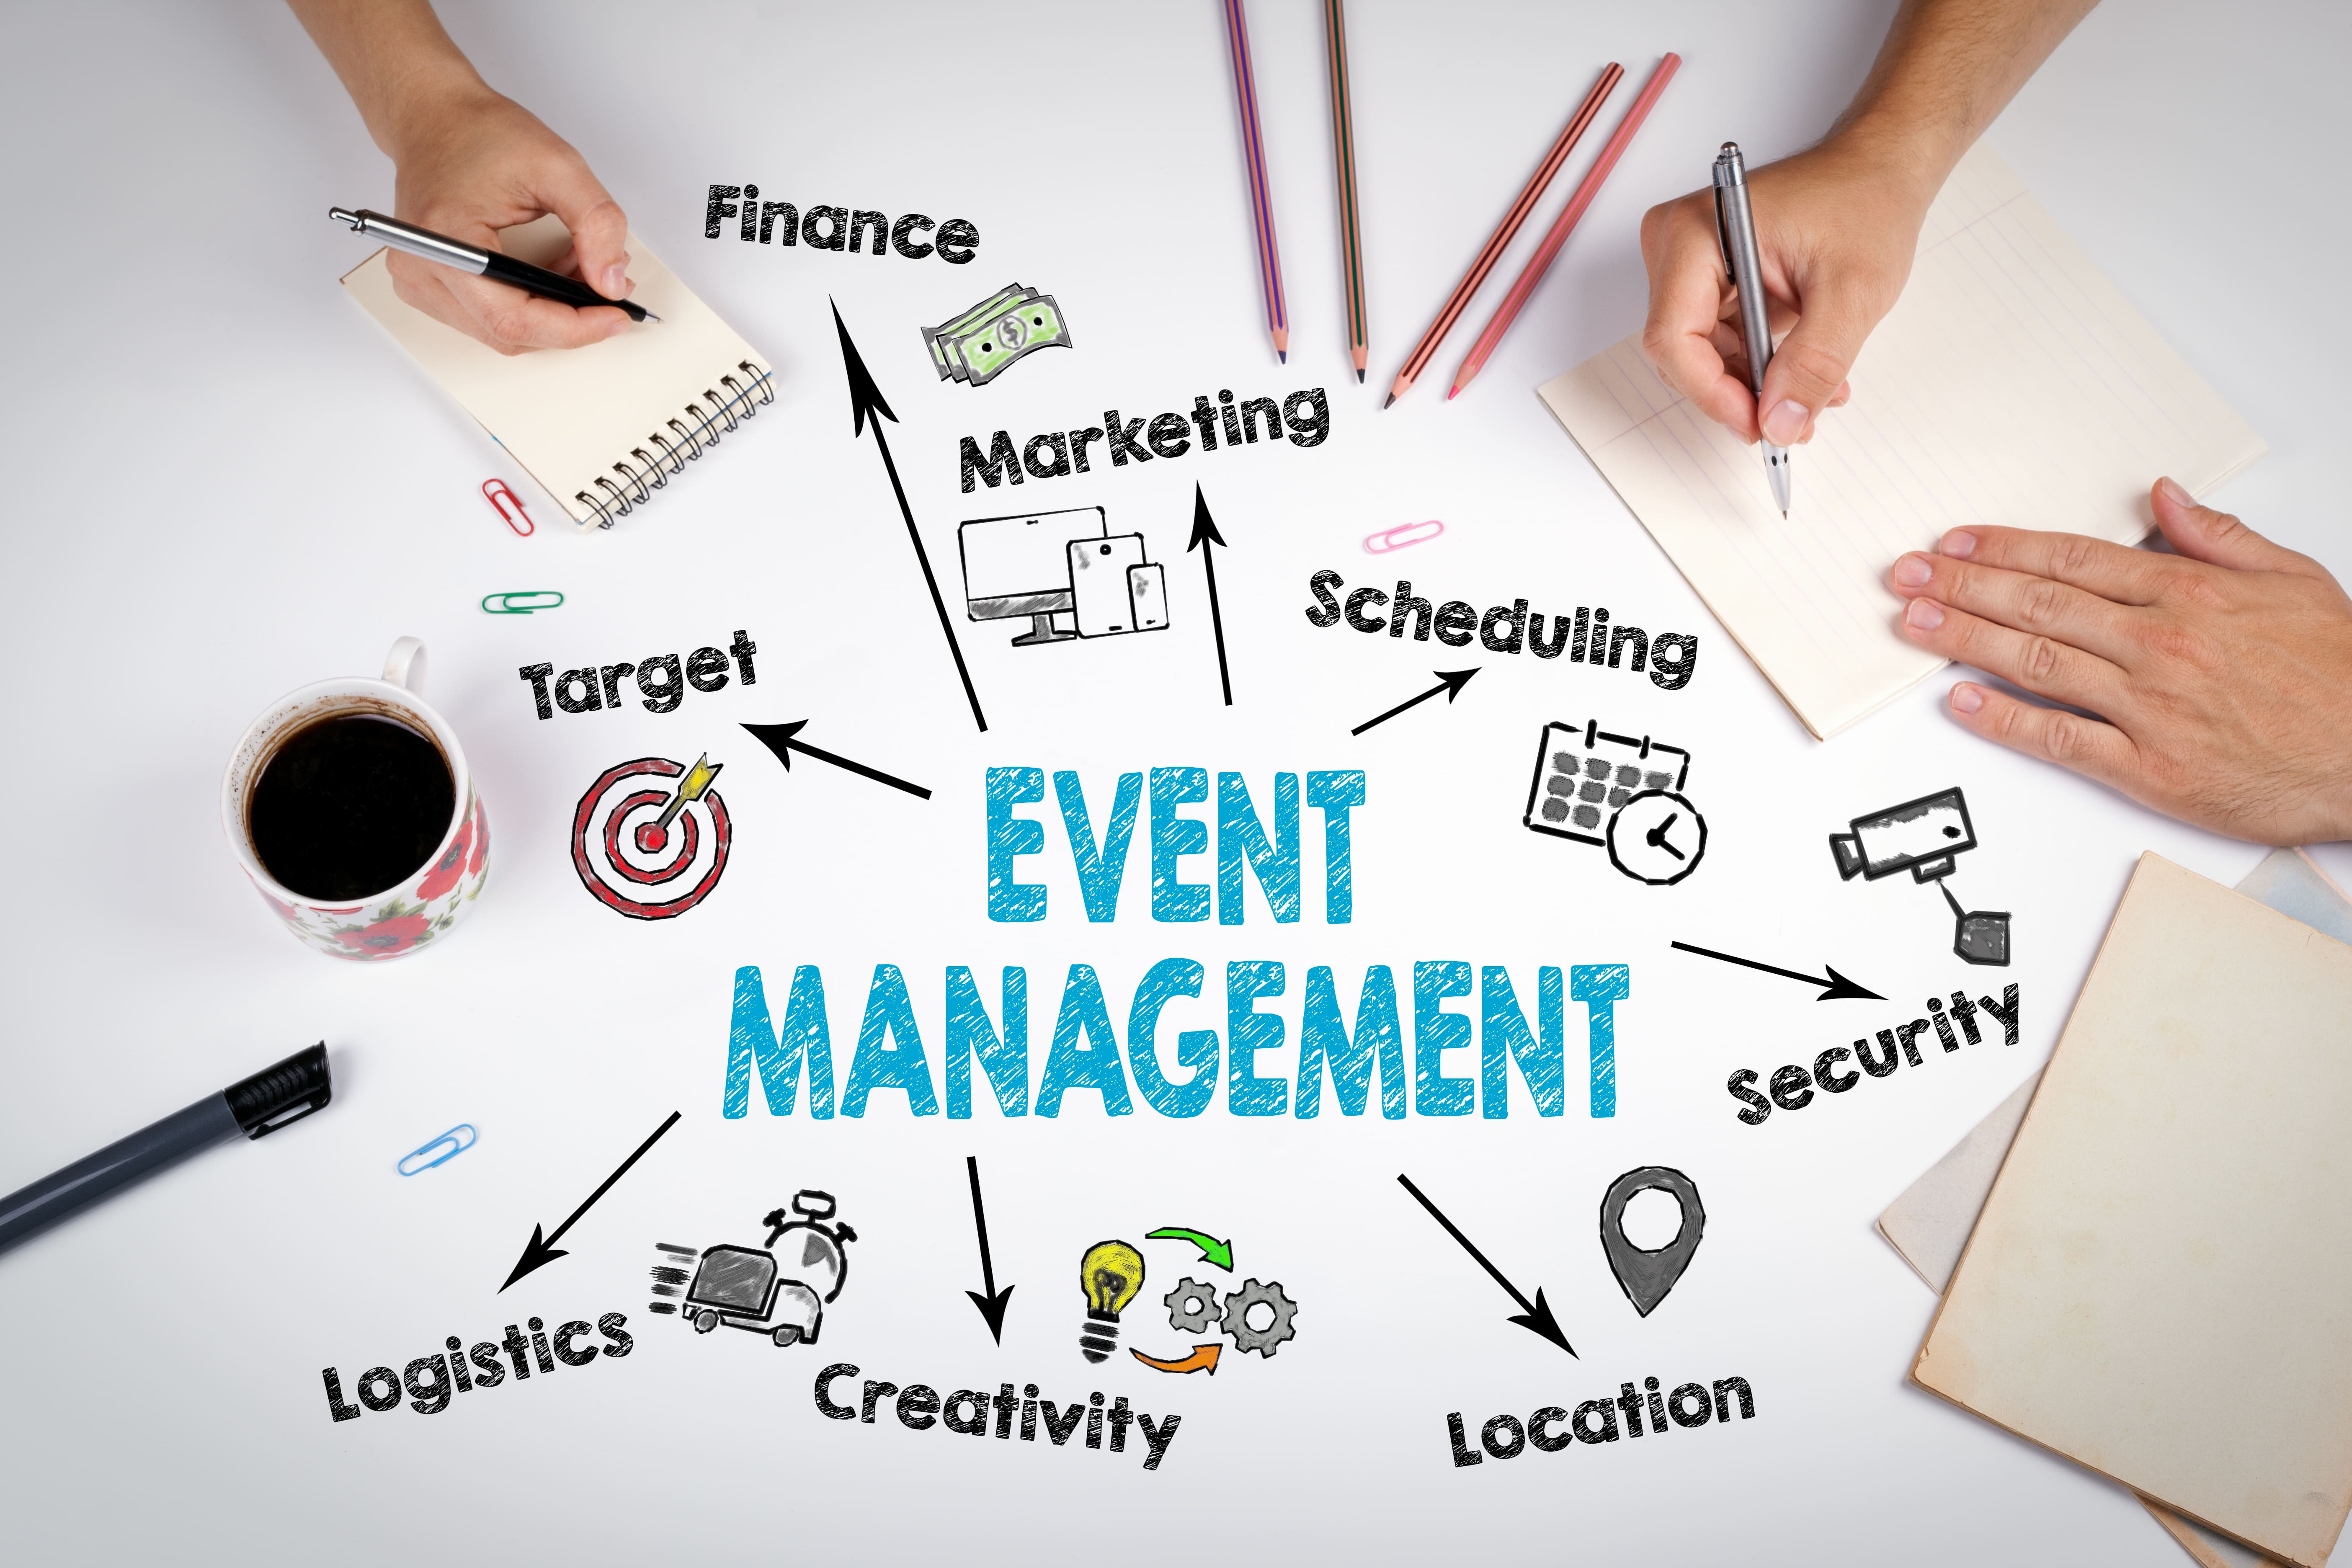 What is an event management tool?